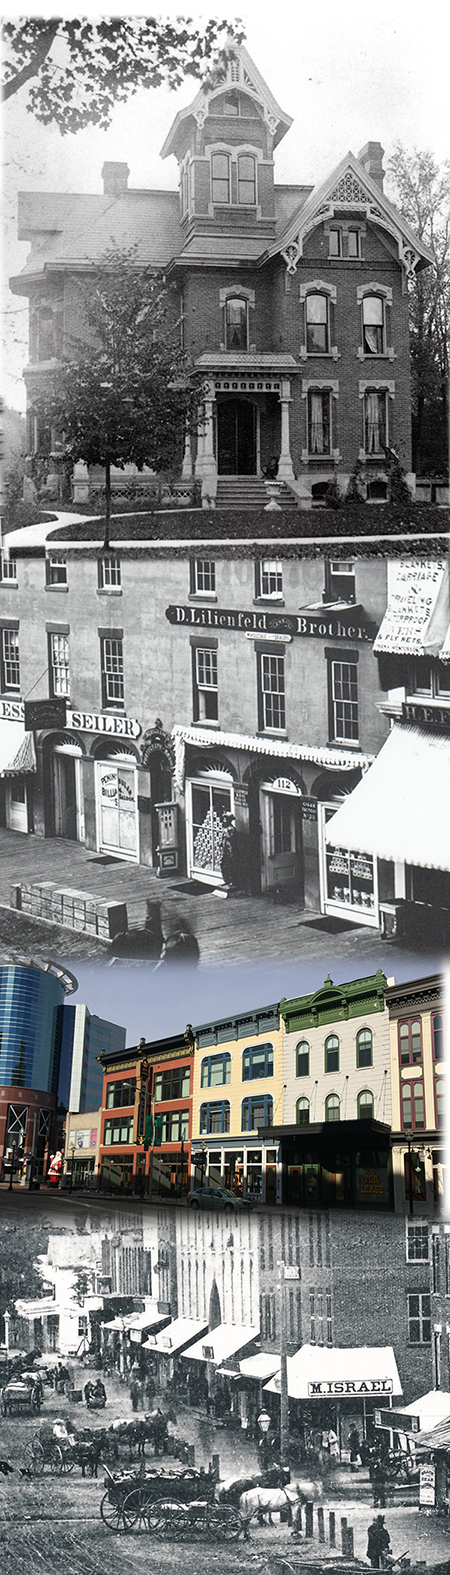 The Kalamazoo house (David Lilienfeld House) is pictured above, with the cigar factory that built it in the middle two photos, and the store owned by David's mentor and friend for whom he clerked below. (Courtesy of The kalamazoo public library.)